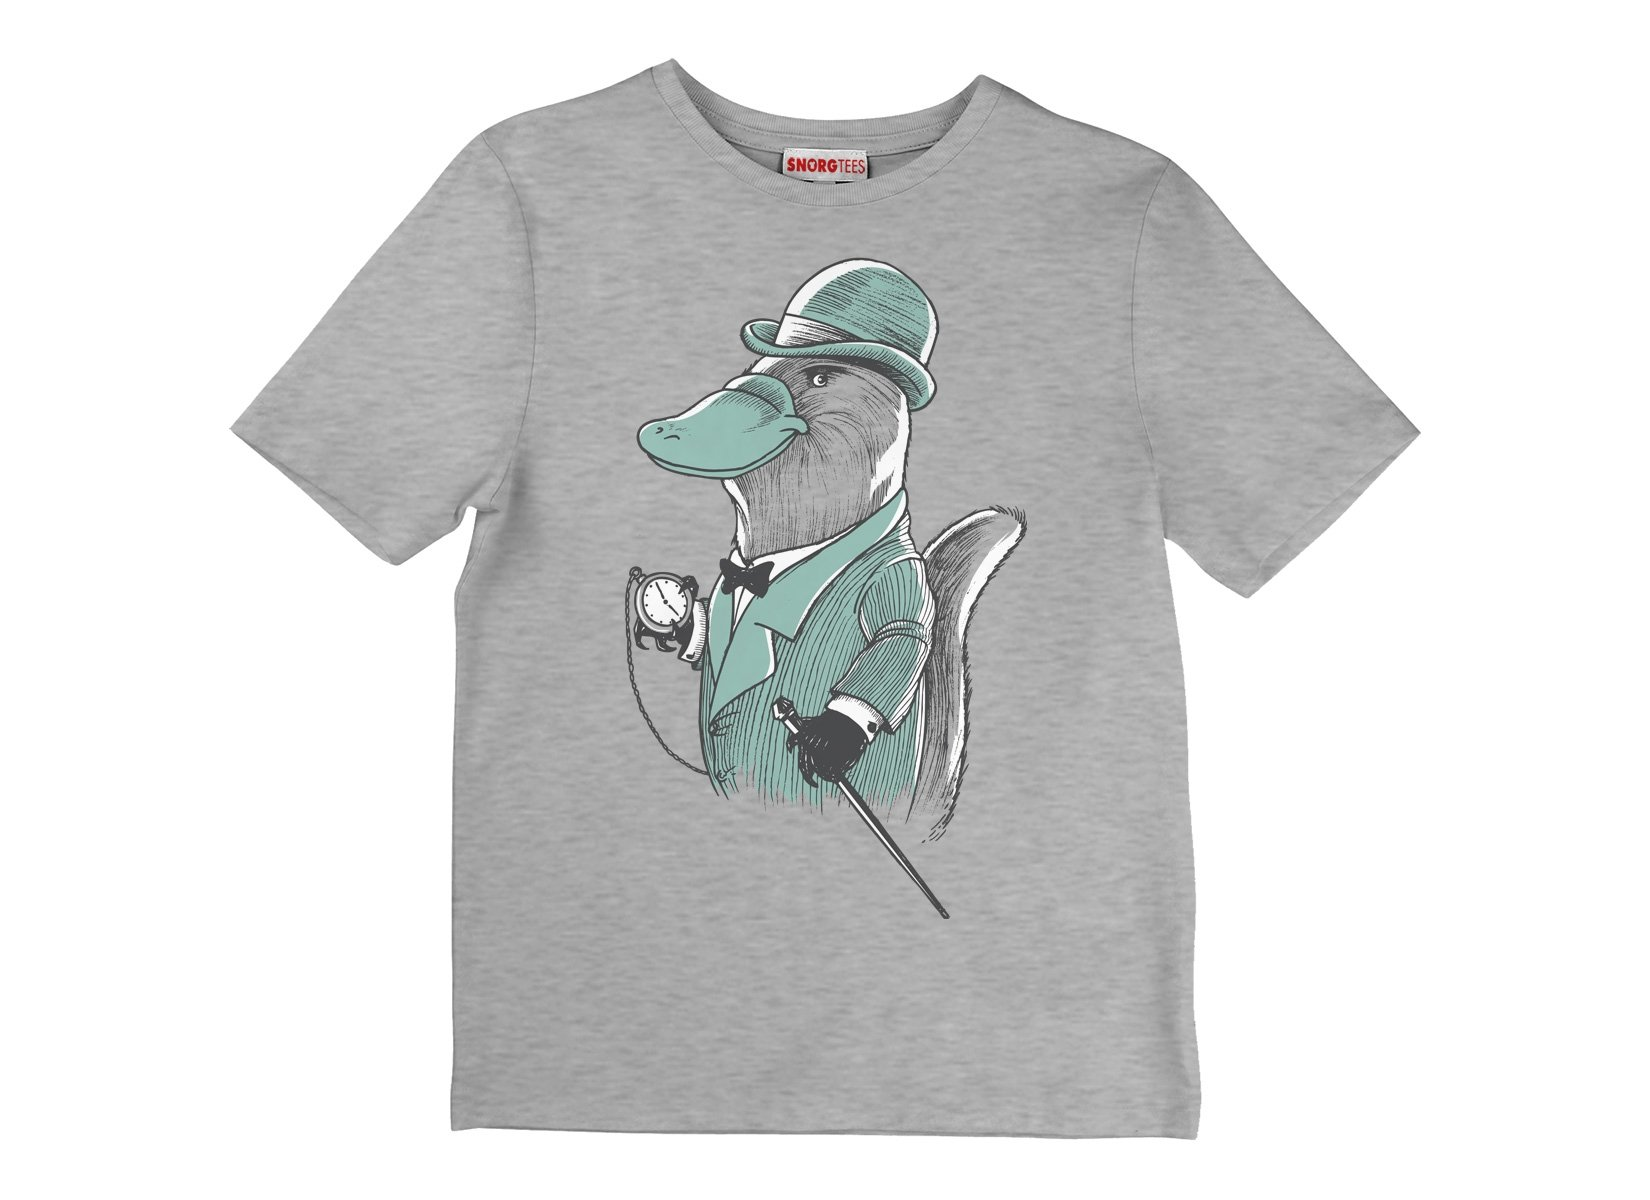 Duke Platypus on Kids T-Shirt